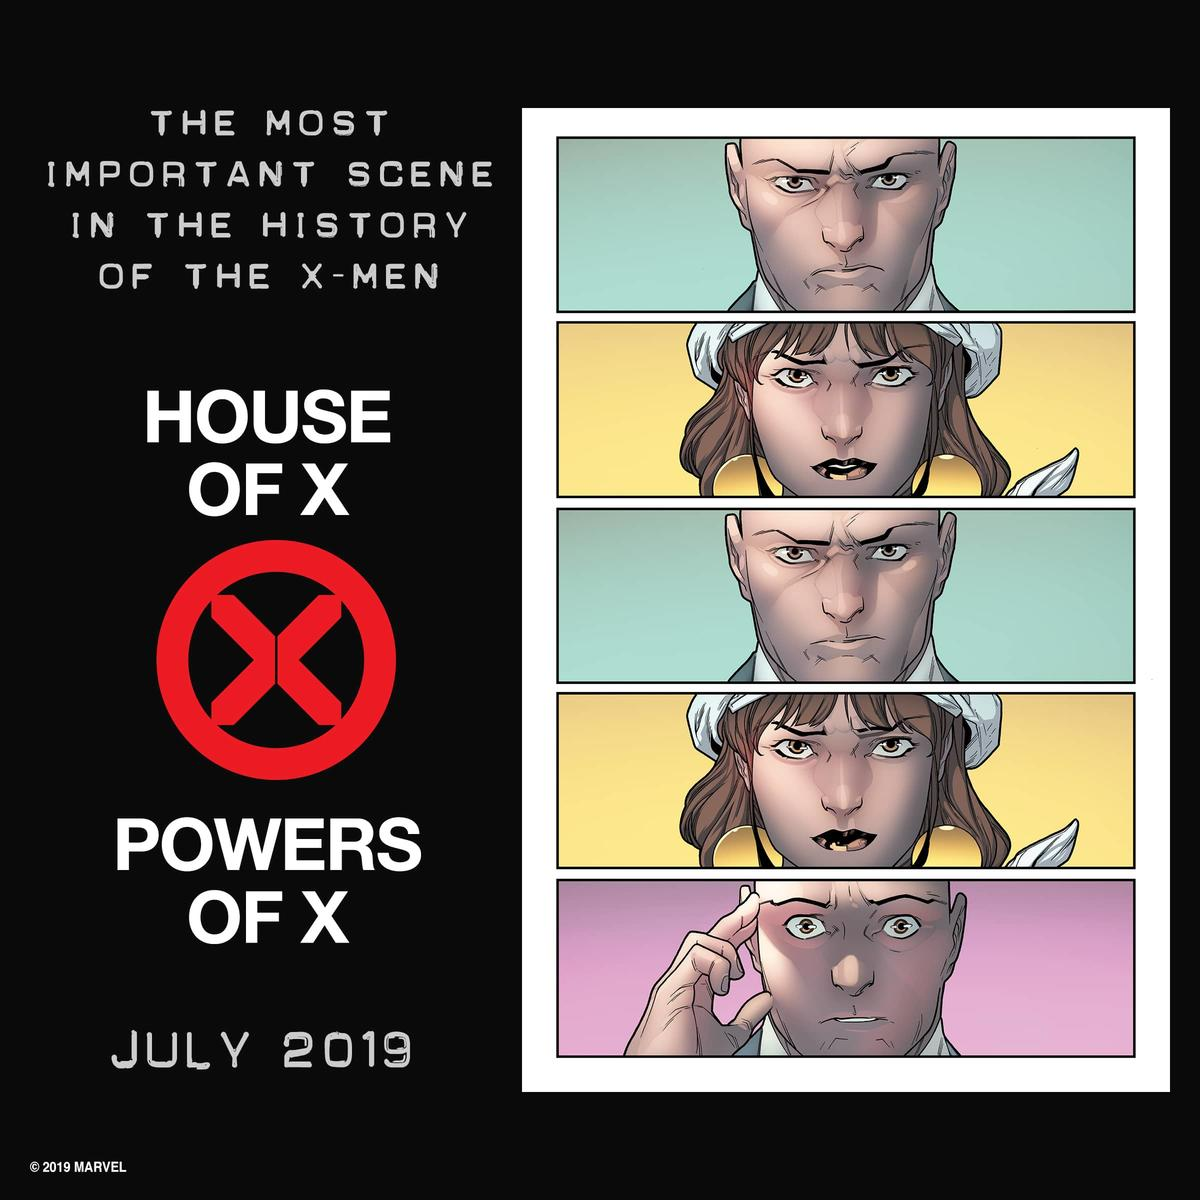 House of X. Powers of X.